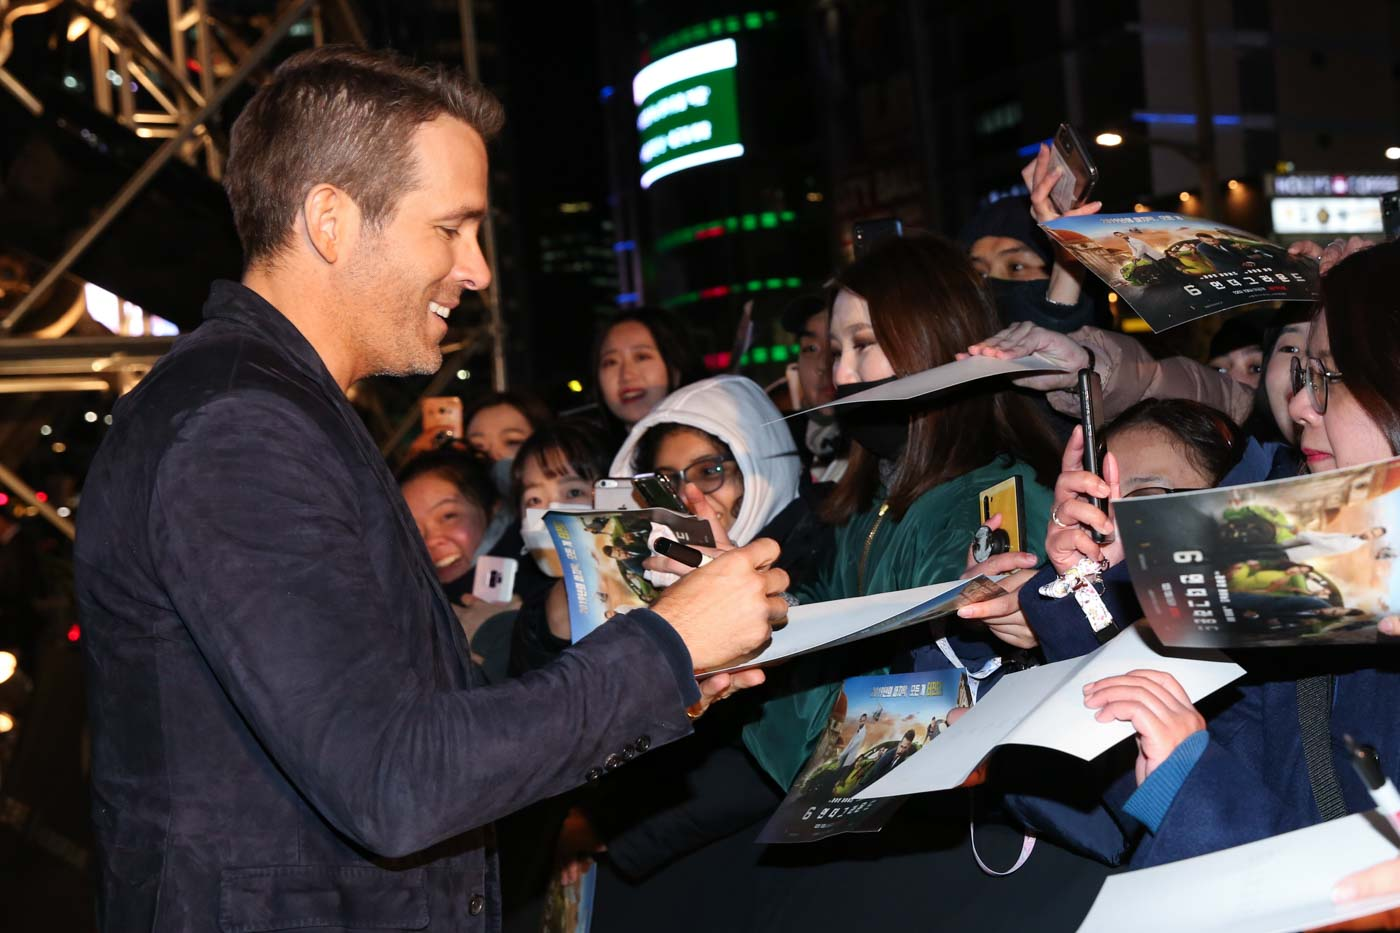 Fan service: 6 Underground star Ryan Reynolds signs autographs for fans outside the Dongdaemun Design Plaza where the Netflix movie premiered on December 02, 2019 in Seoul, South Korea. Photo courtesy of Netflix